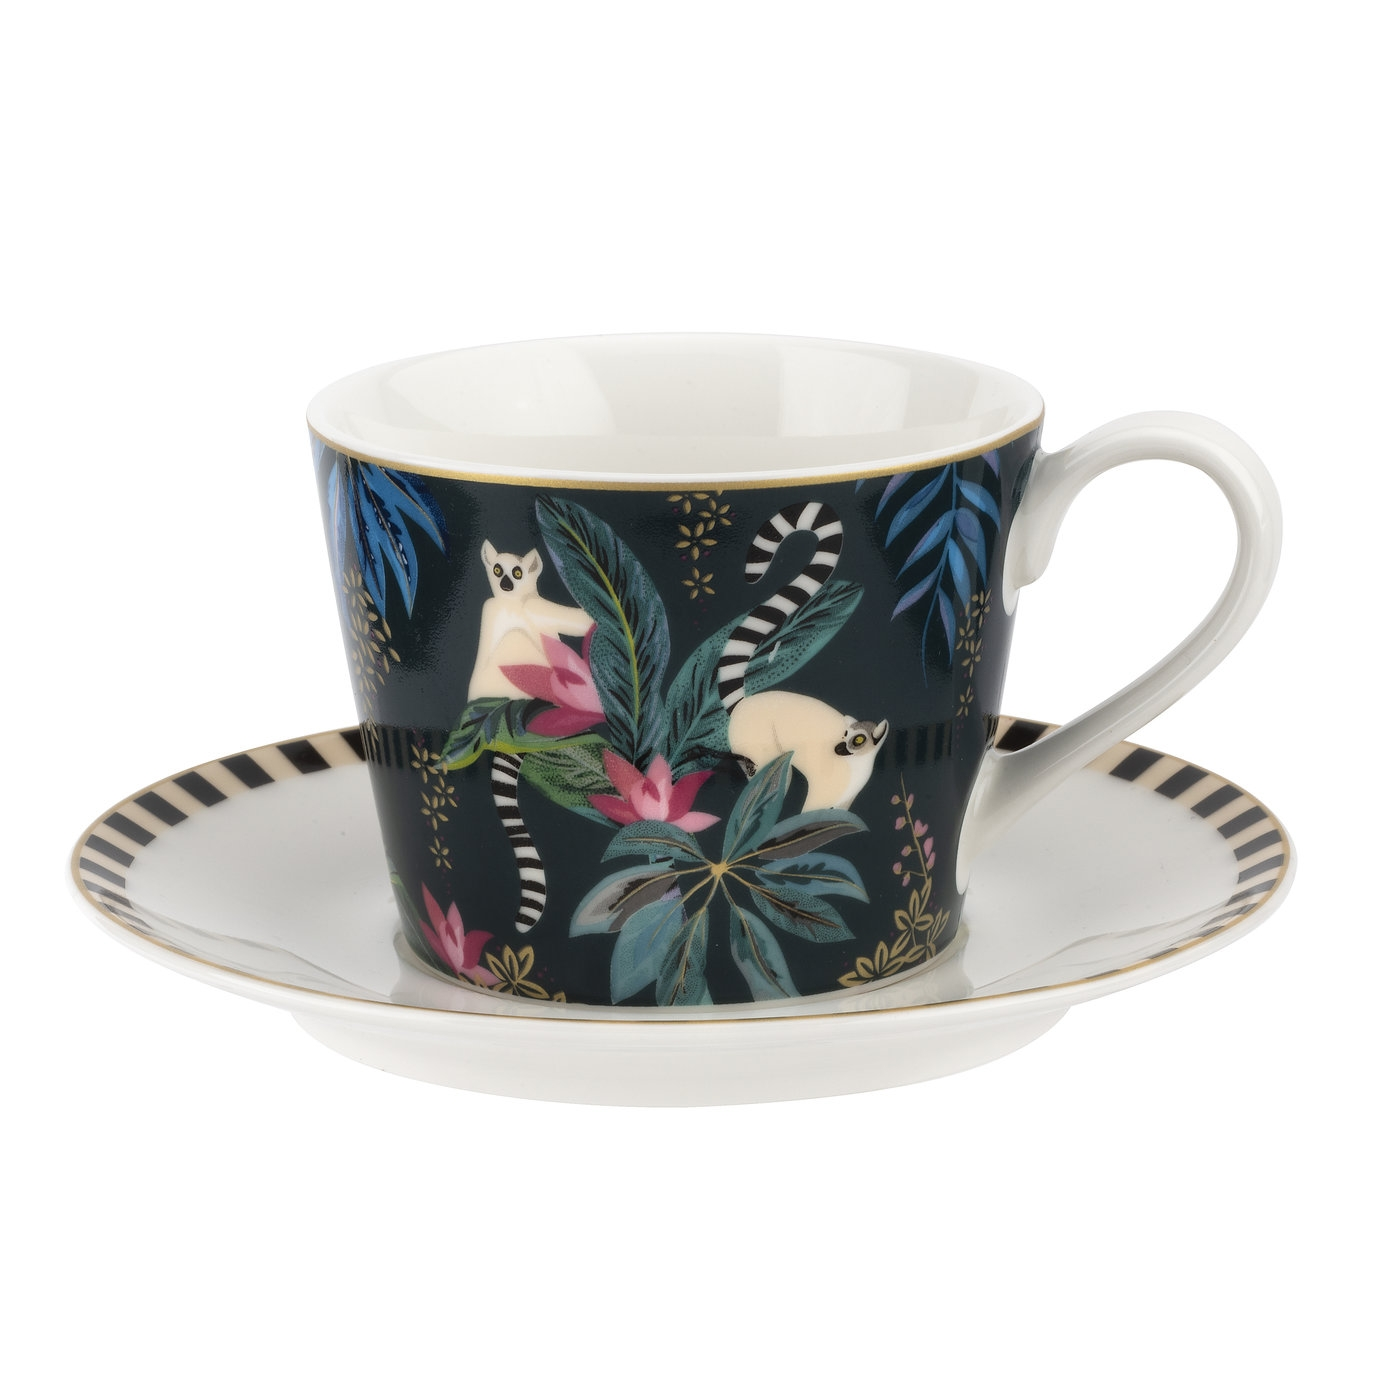 Sara Miller London for Portmeirion Tahiti Collection Lemur Teacup and Saucer image number 0